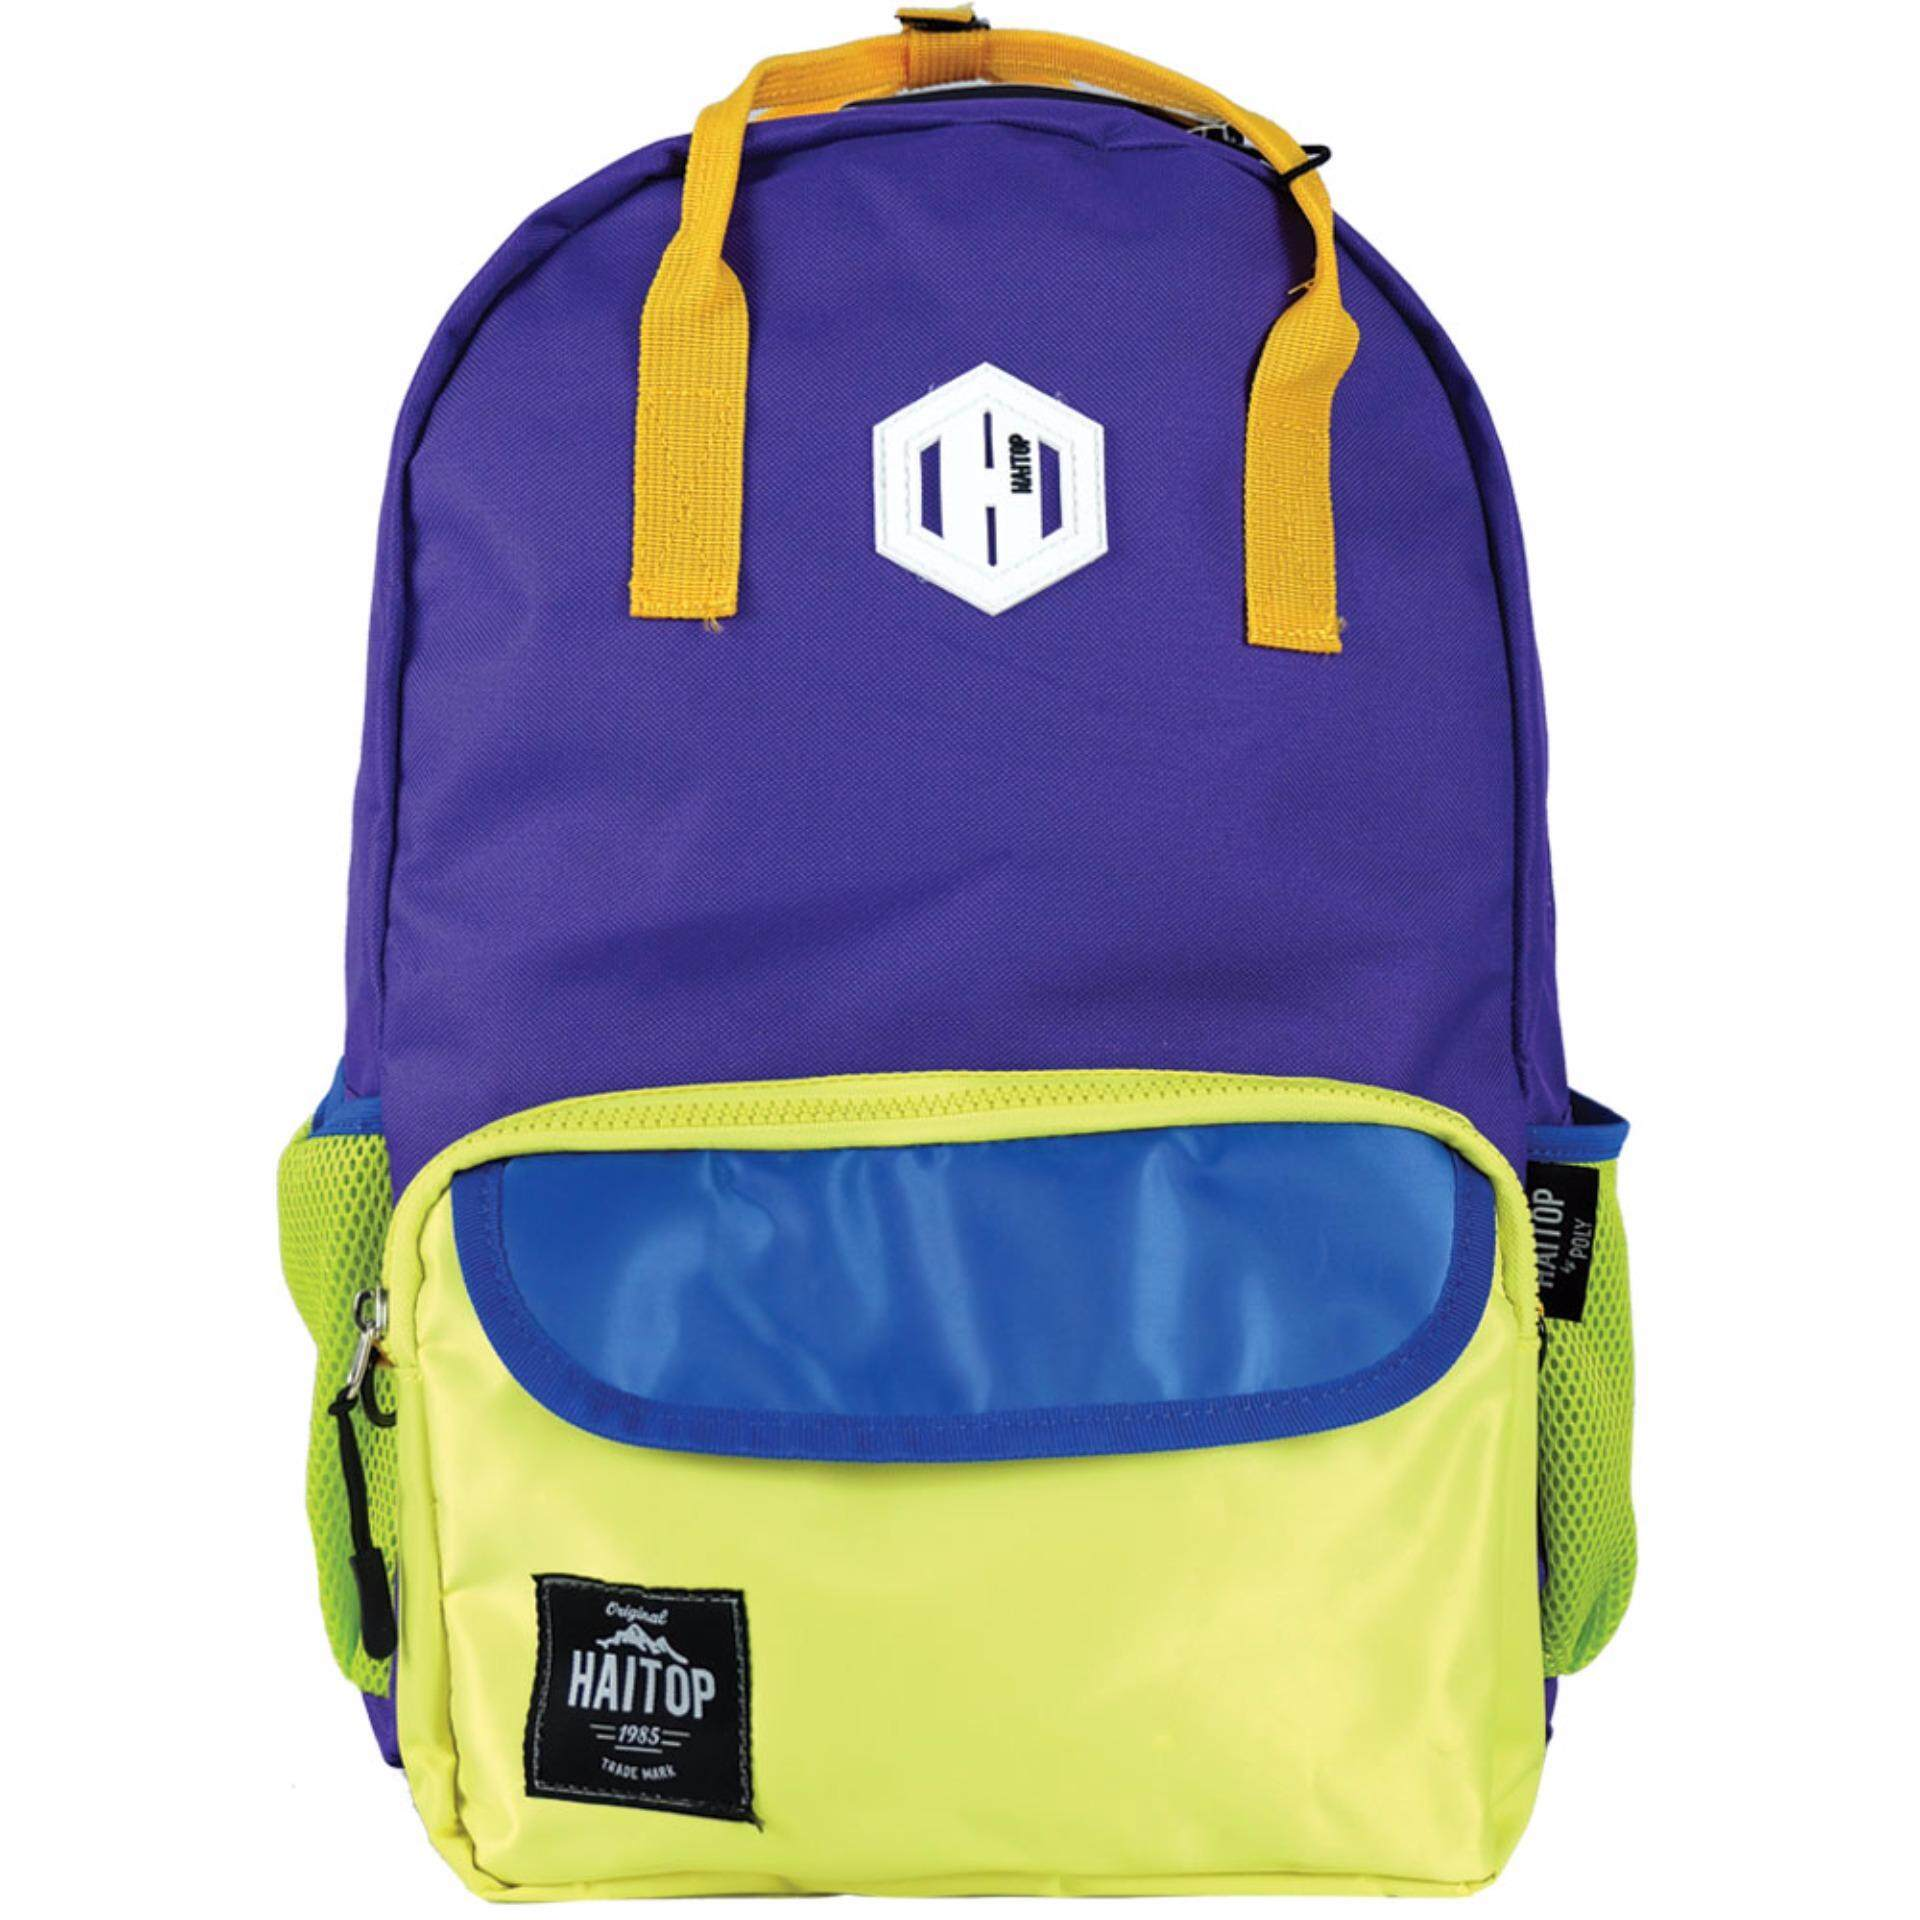 Haitop HB1655 18'' Two-Way Notebook Backpack (Violet/Yellow)